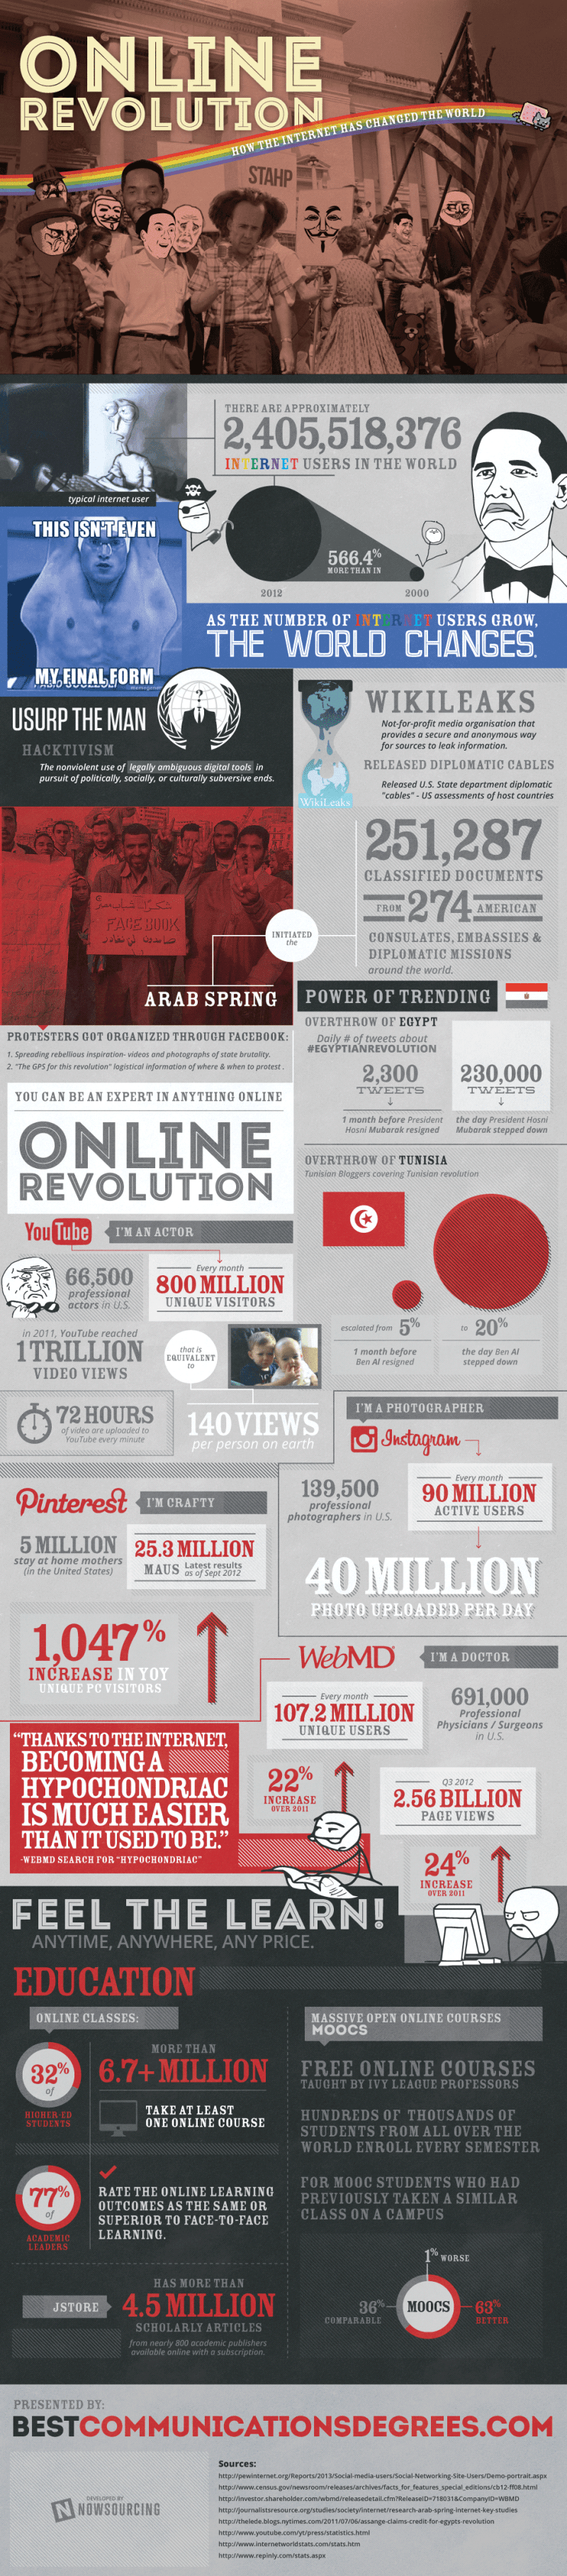 Infographic - The Online Revolution